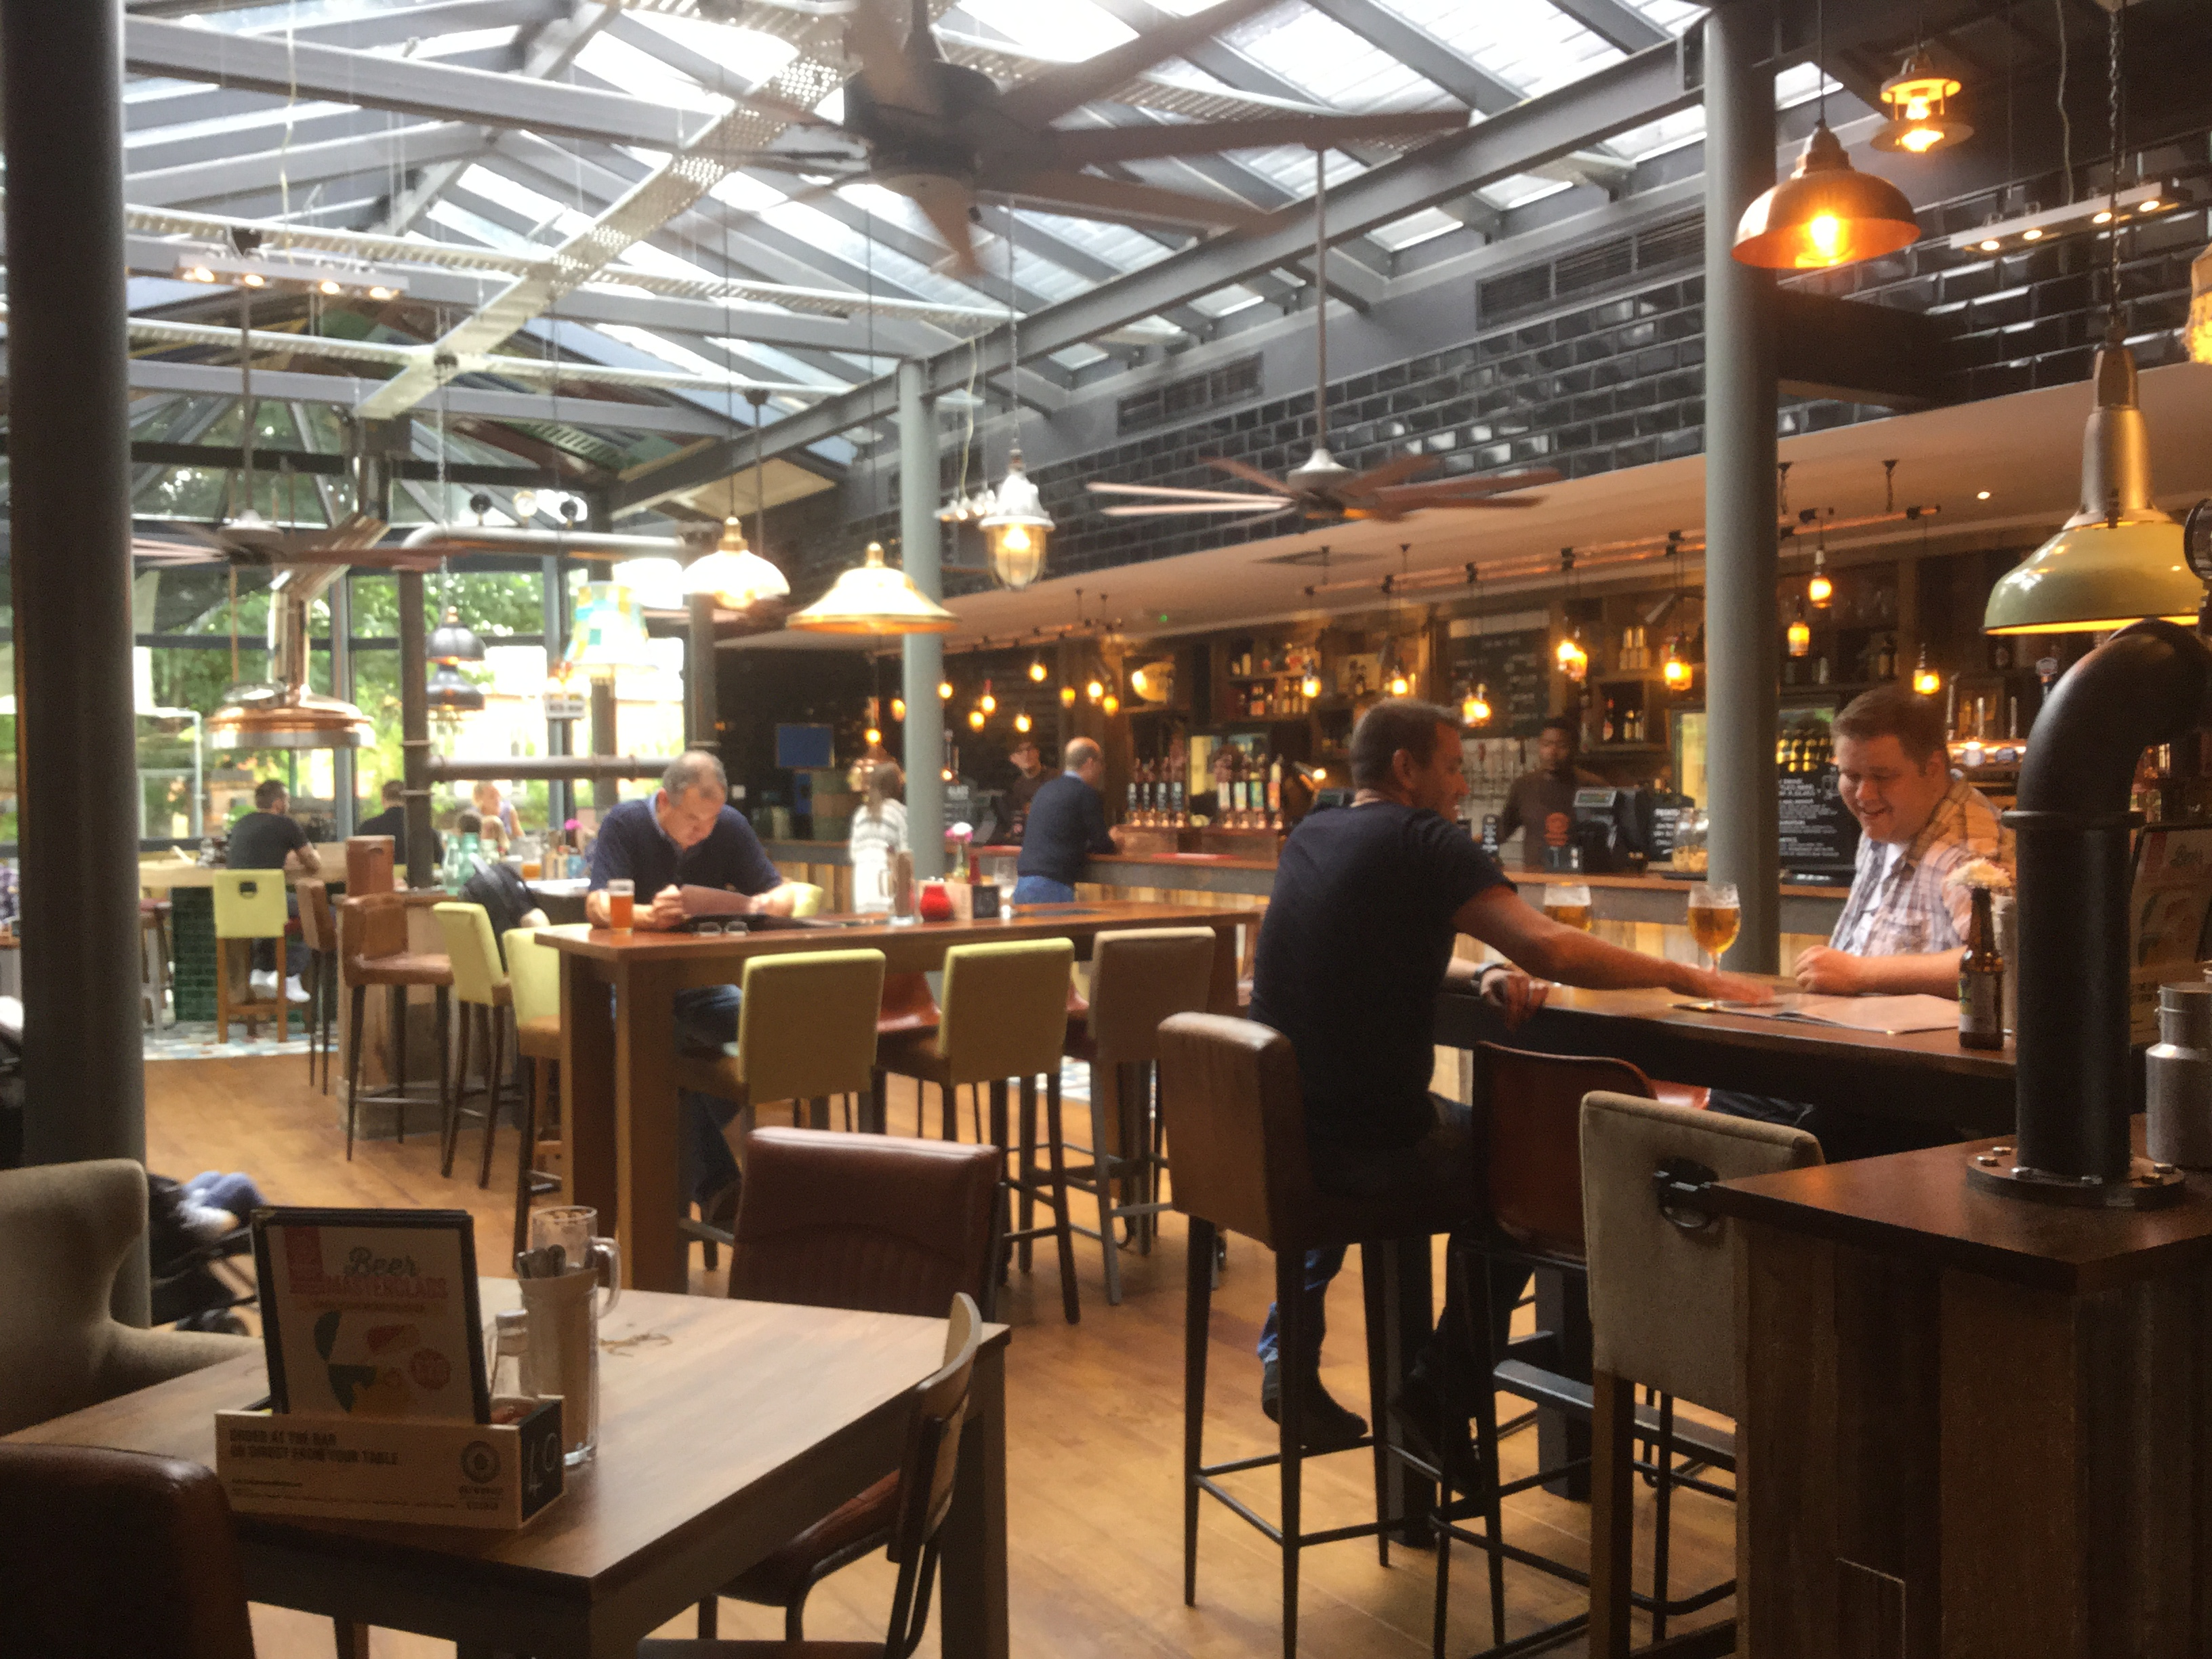 Brewhouse Amp Kitchen Wilmslow Review Artmuso Creative